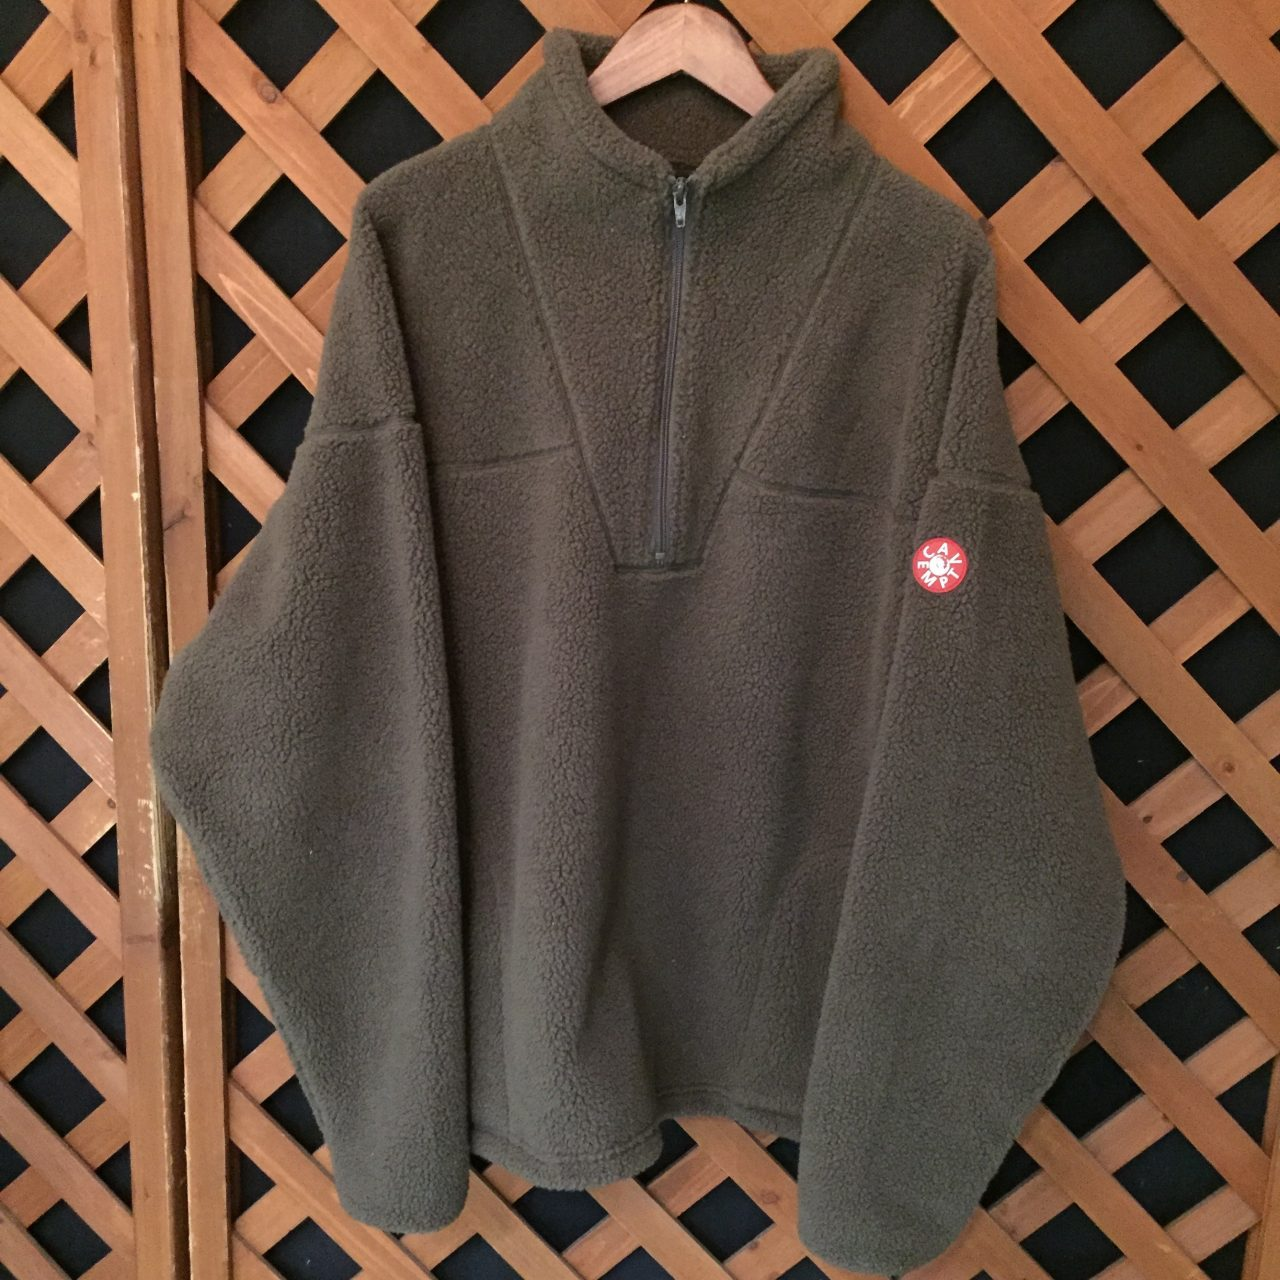 C.E 16AW HEAVY FLEECE HALF ZIP